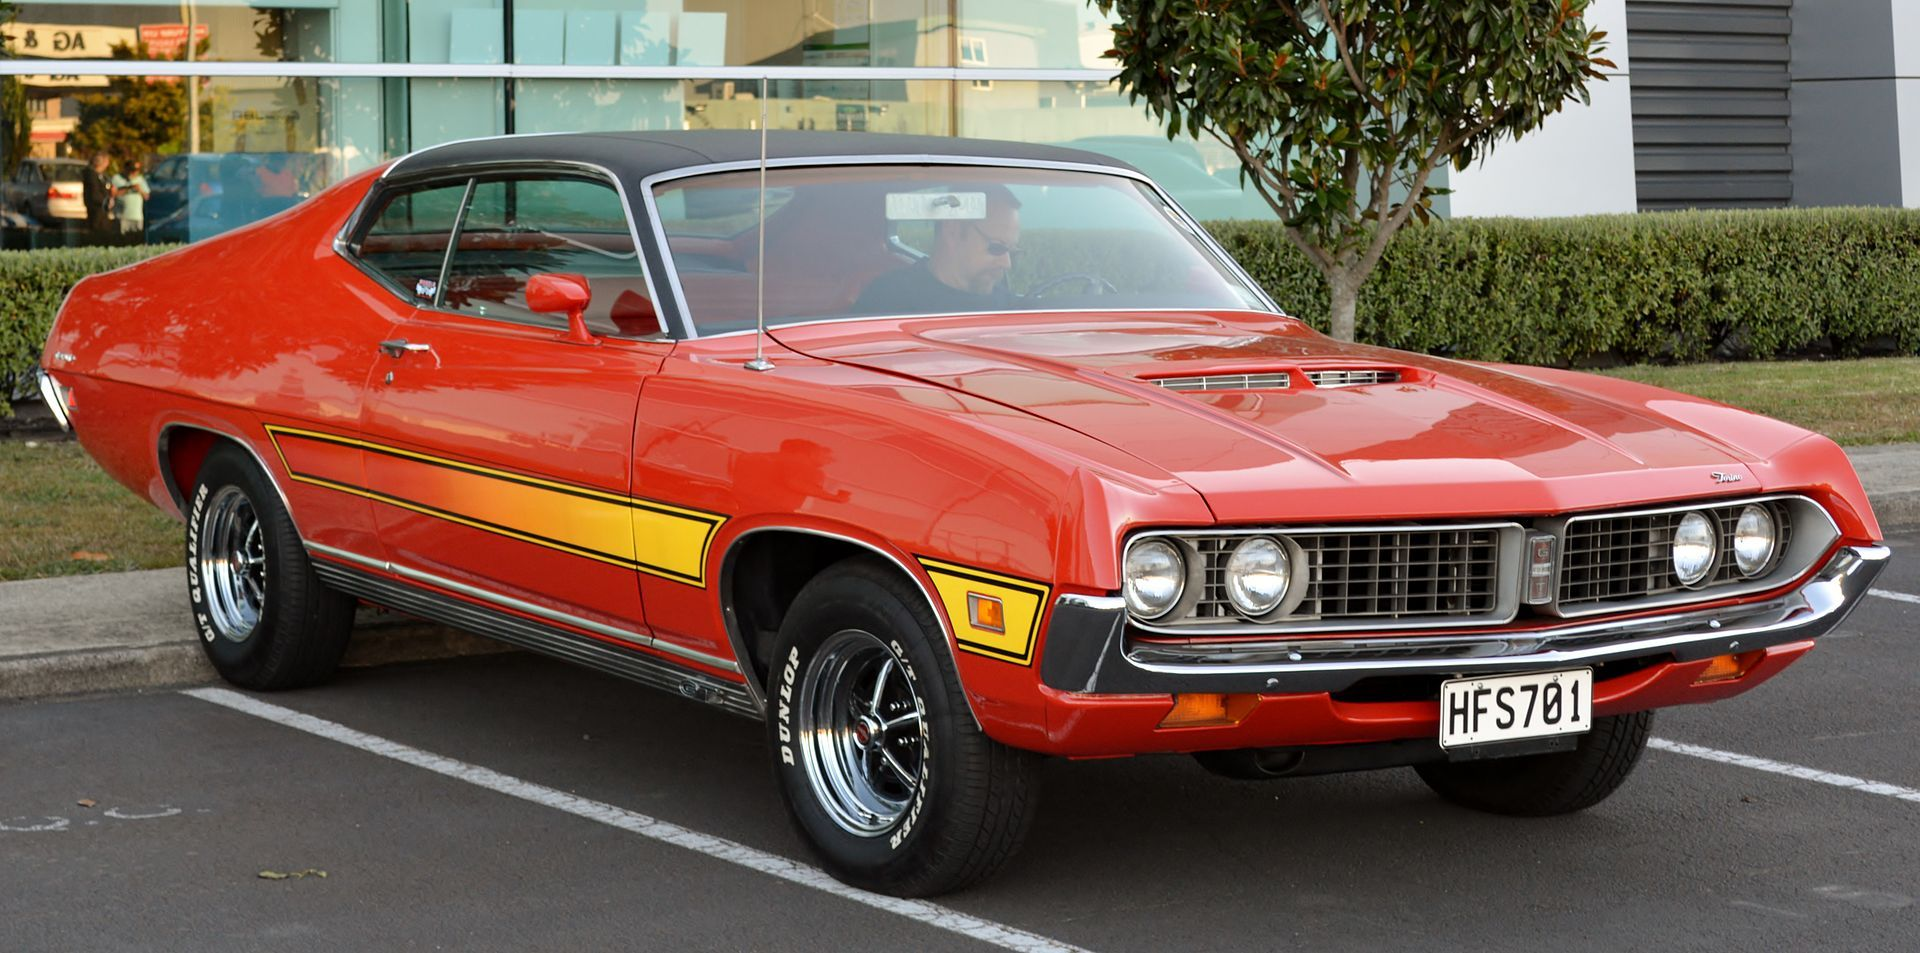 1971 Ford Torino Gt 12259626886 Ford Torino Wikipedia Ford